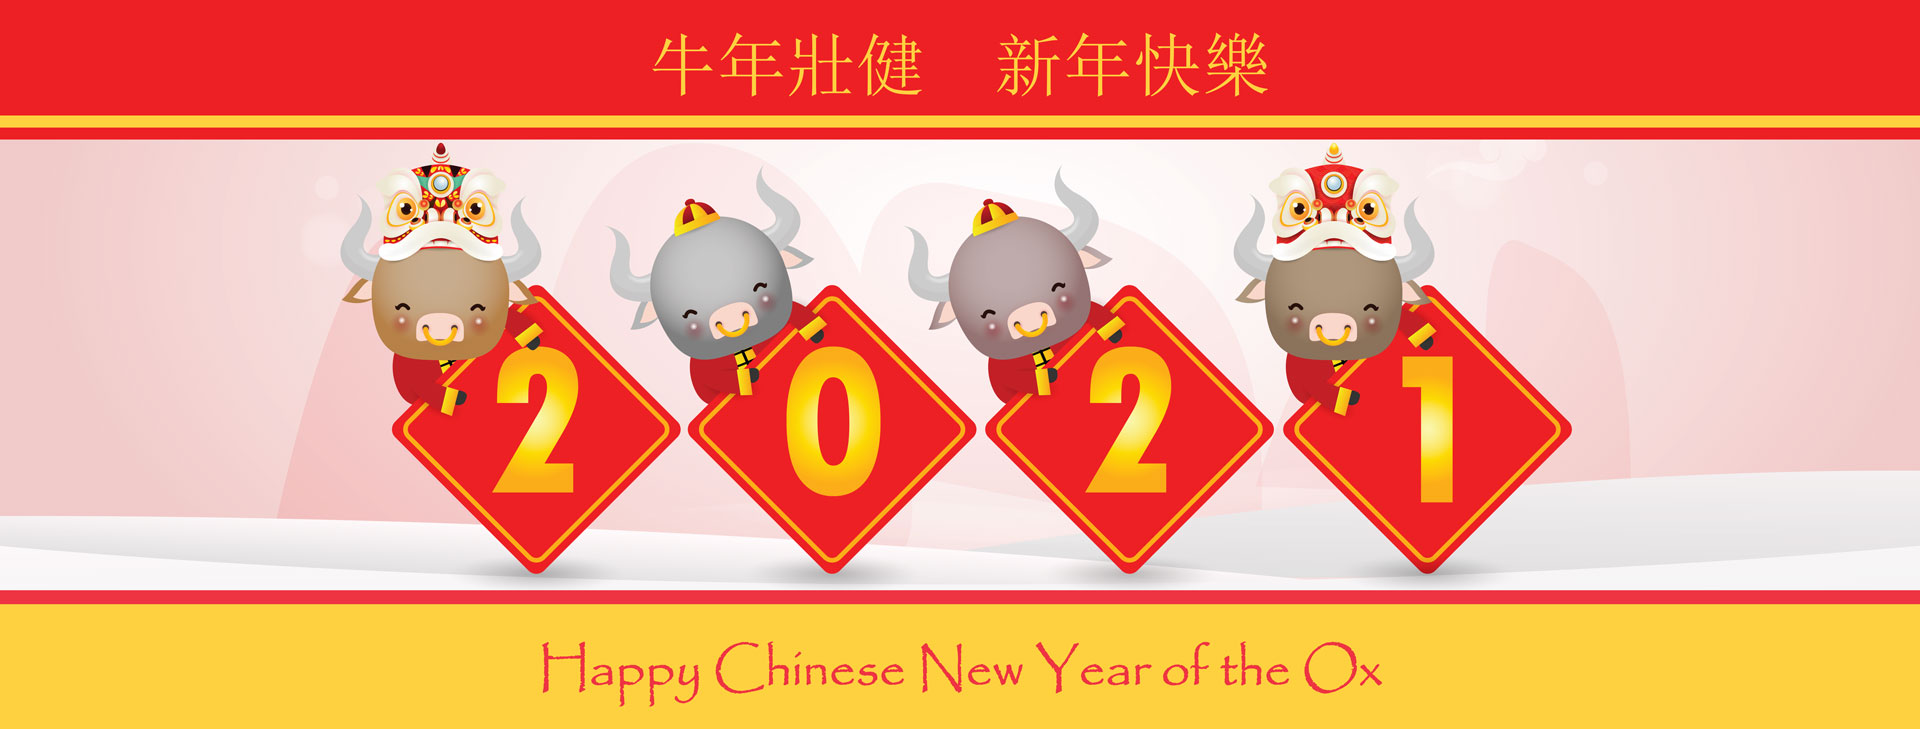 2021 Chinese Year of the Ox